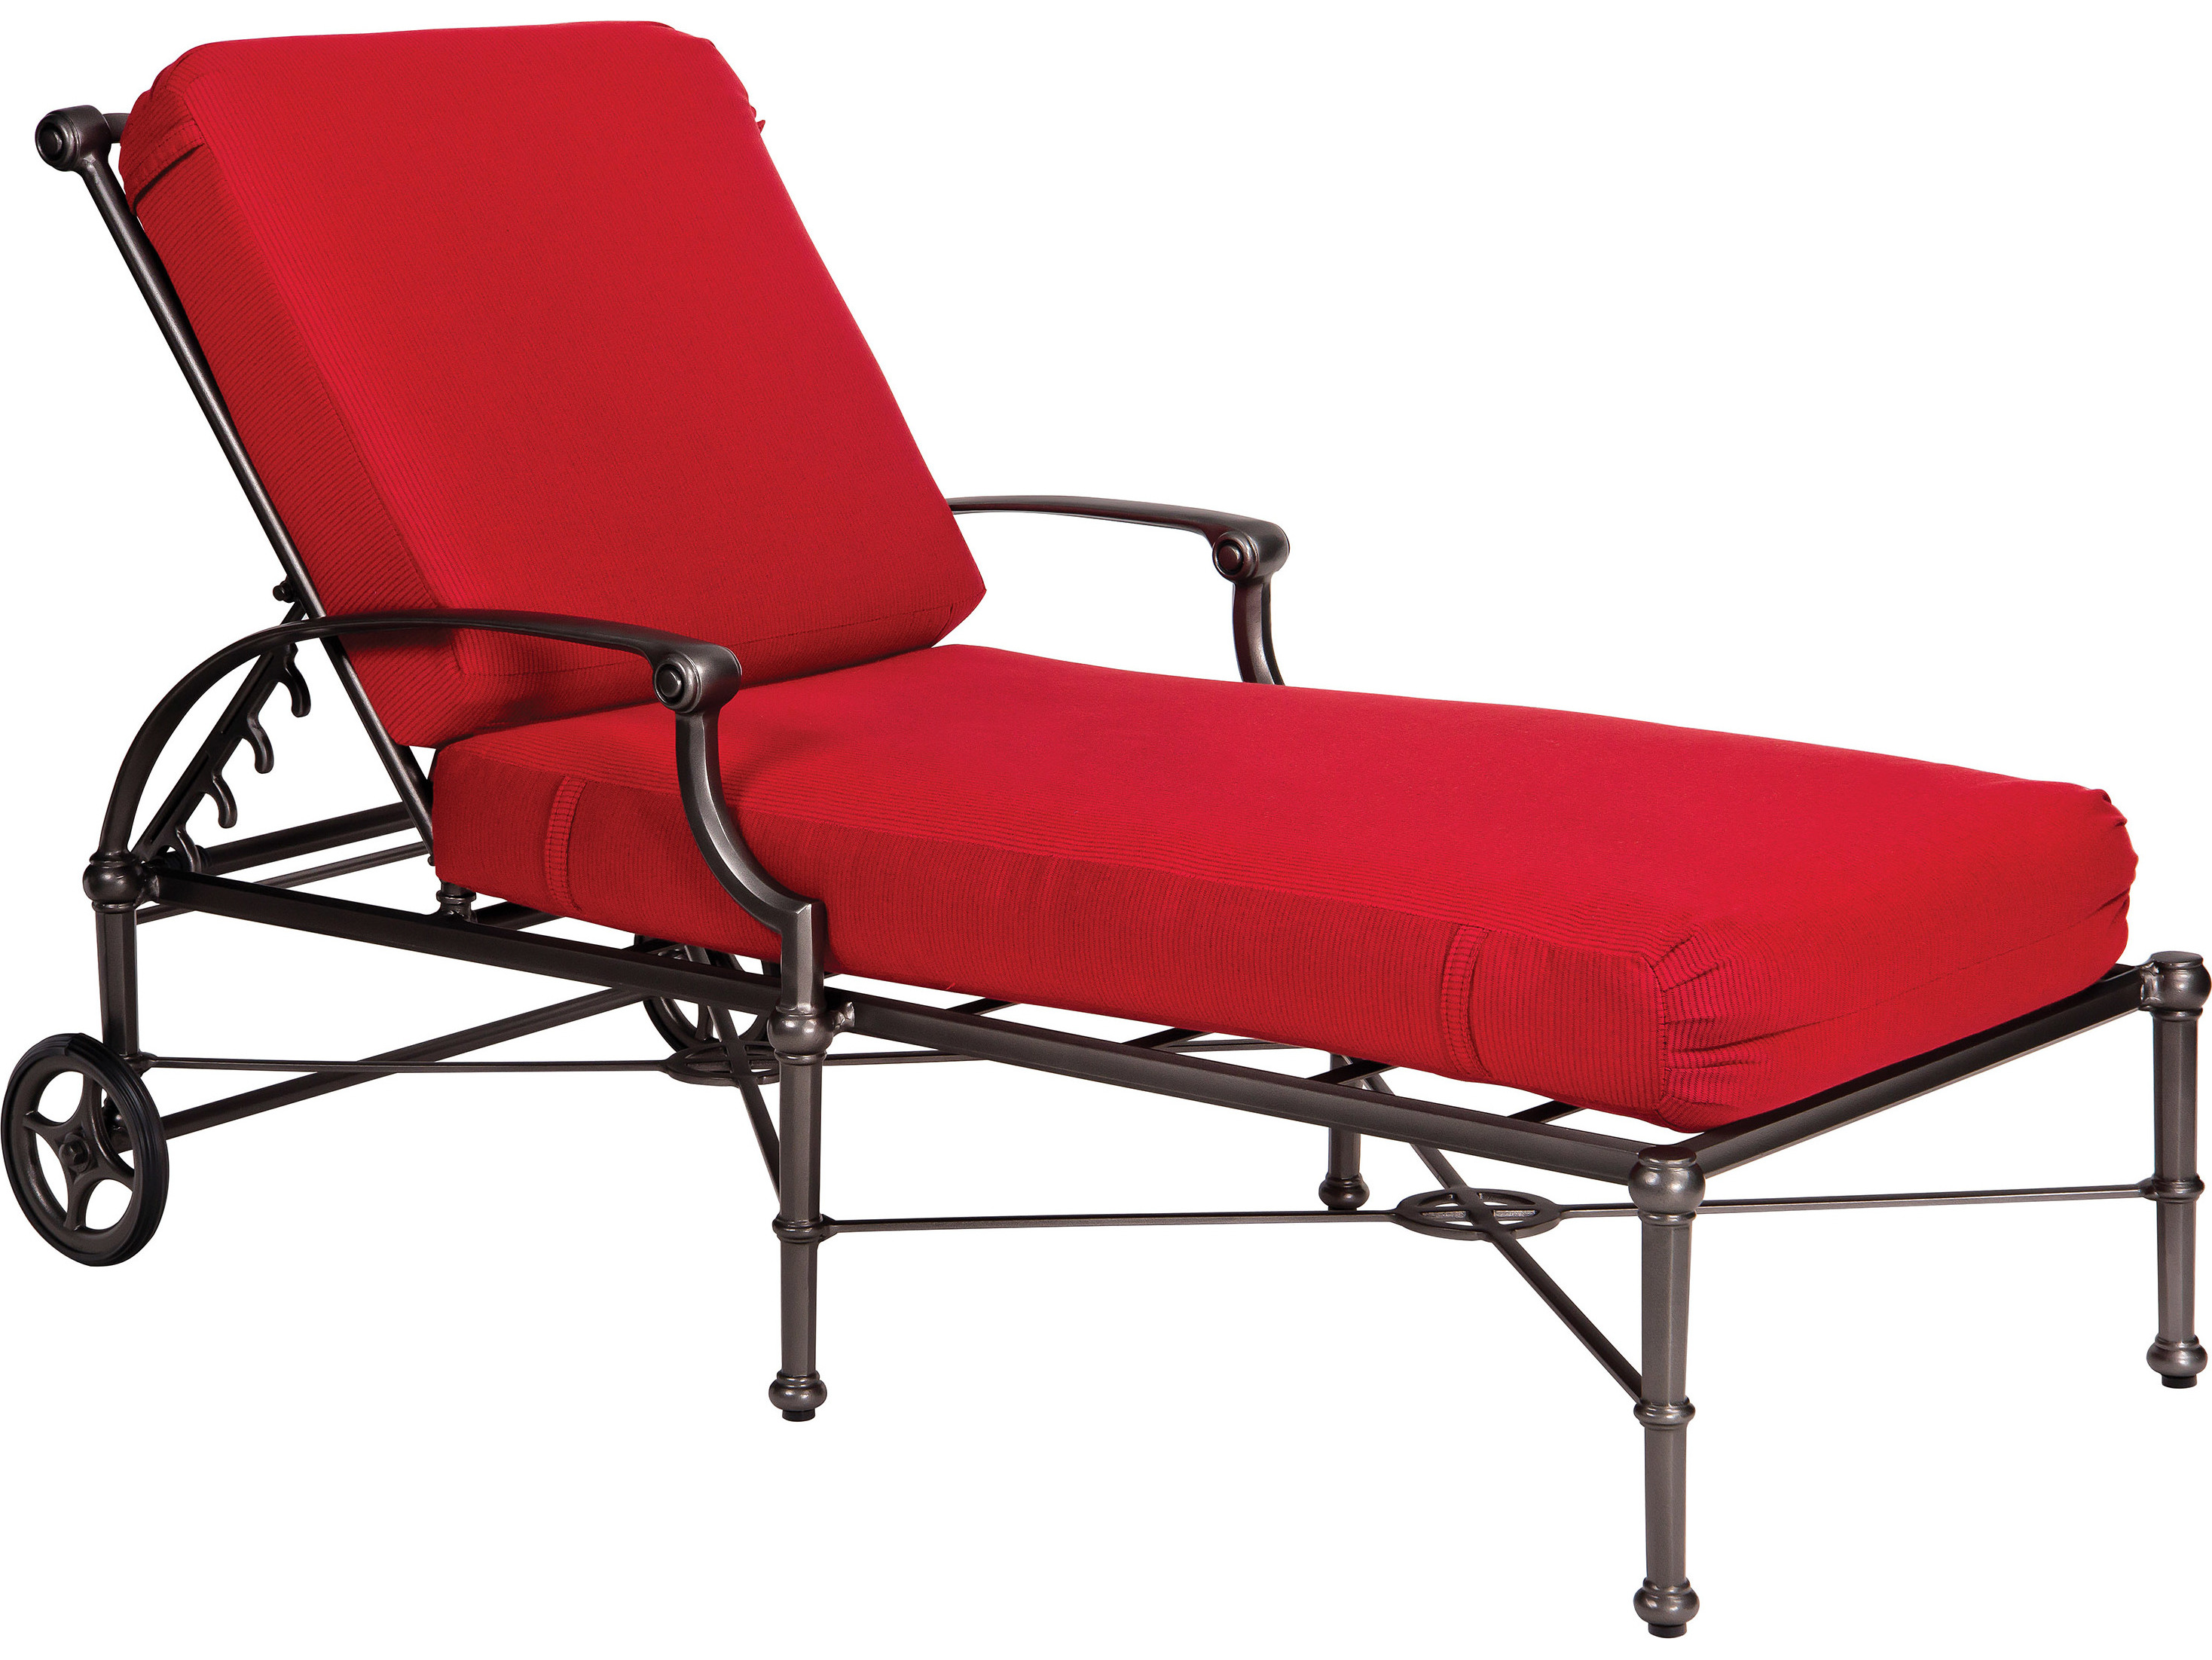 Woodard Delphi Chaise Lounge Replacement Cushions